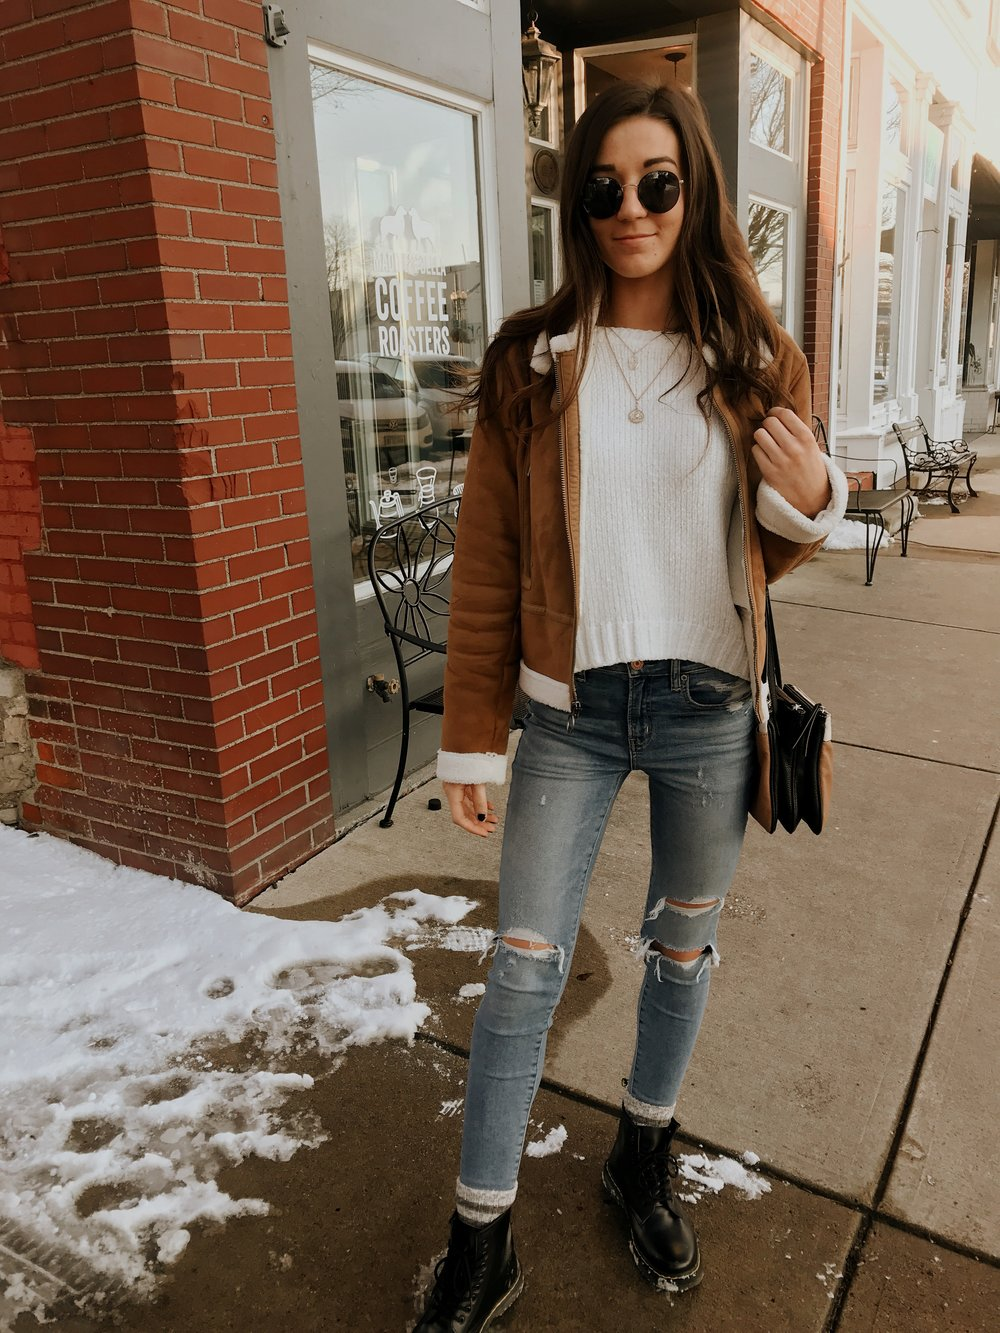 06af0bcfef My go-to outfit this winter has been extremely simple  a pair of jeans